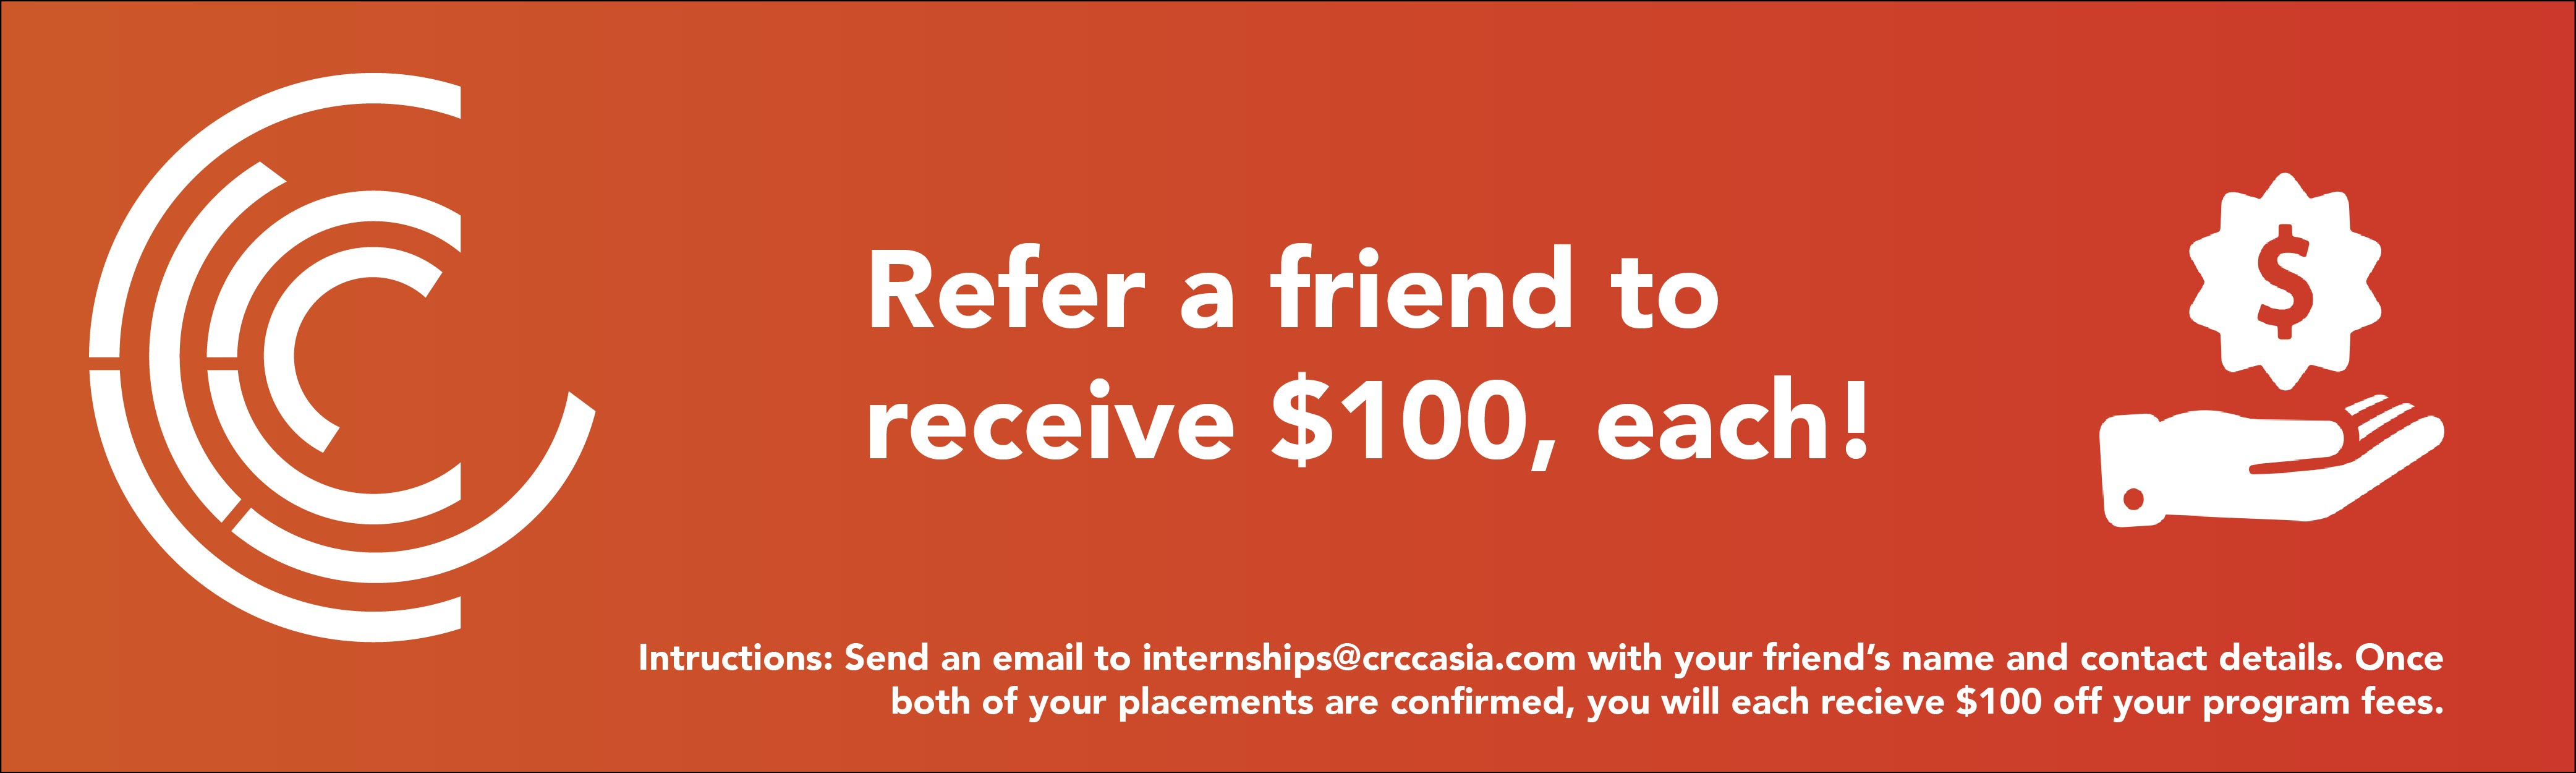 $100 CRCC Asia Refer Friend incentive